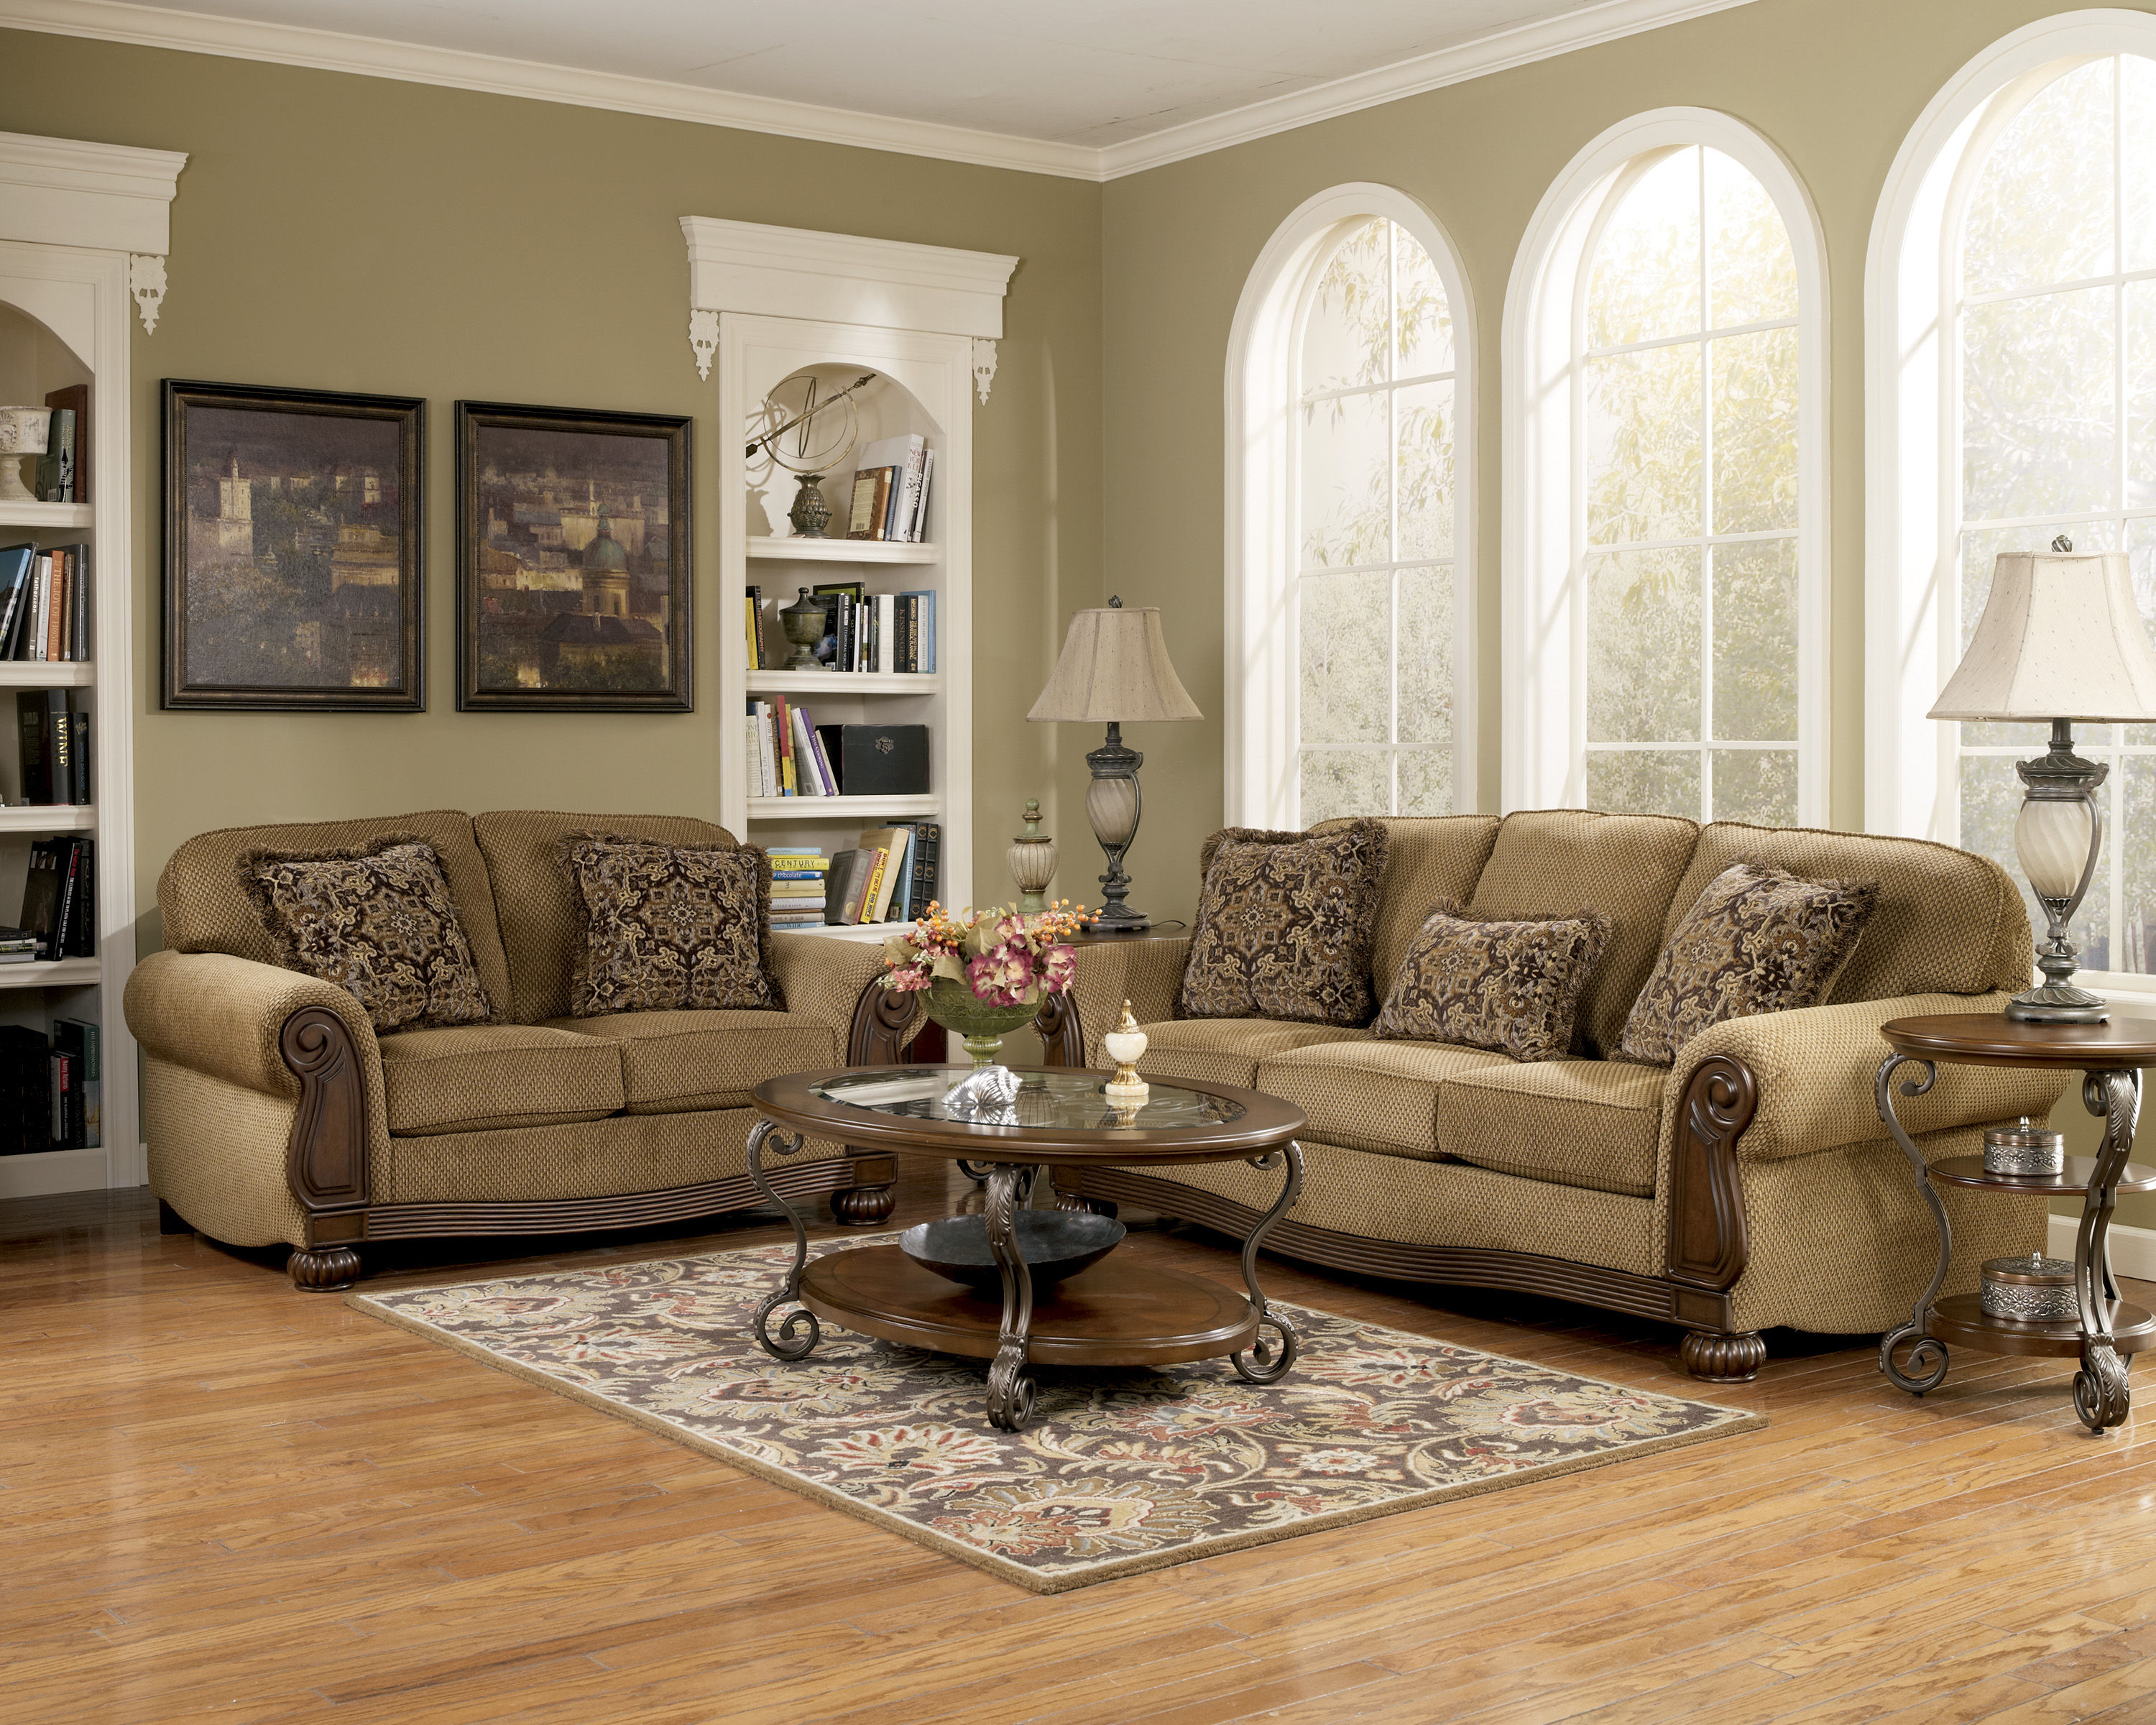 Nestor Traditional Brown Glass Wood Metal Coffee Table Set Occasional Tables The Classy Home